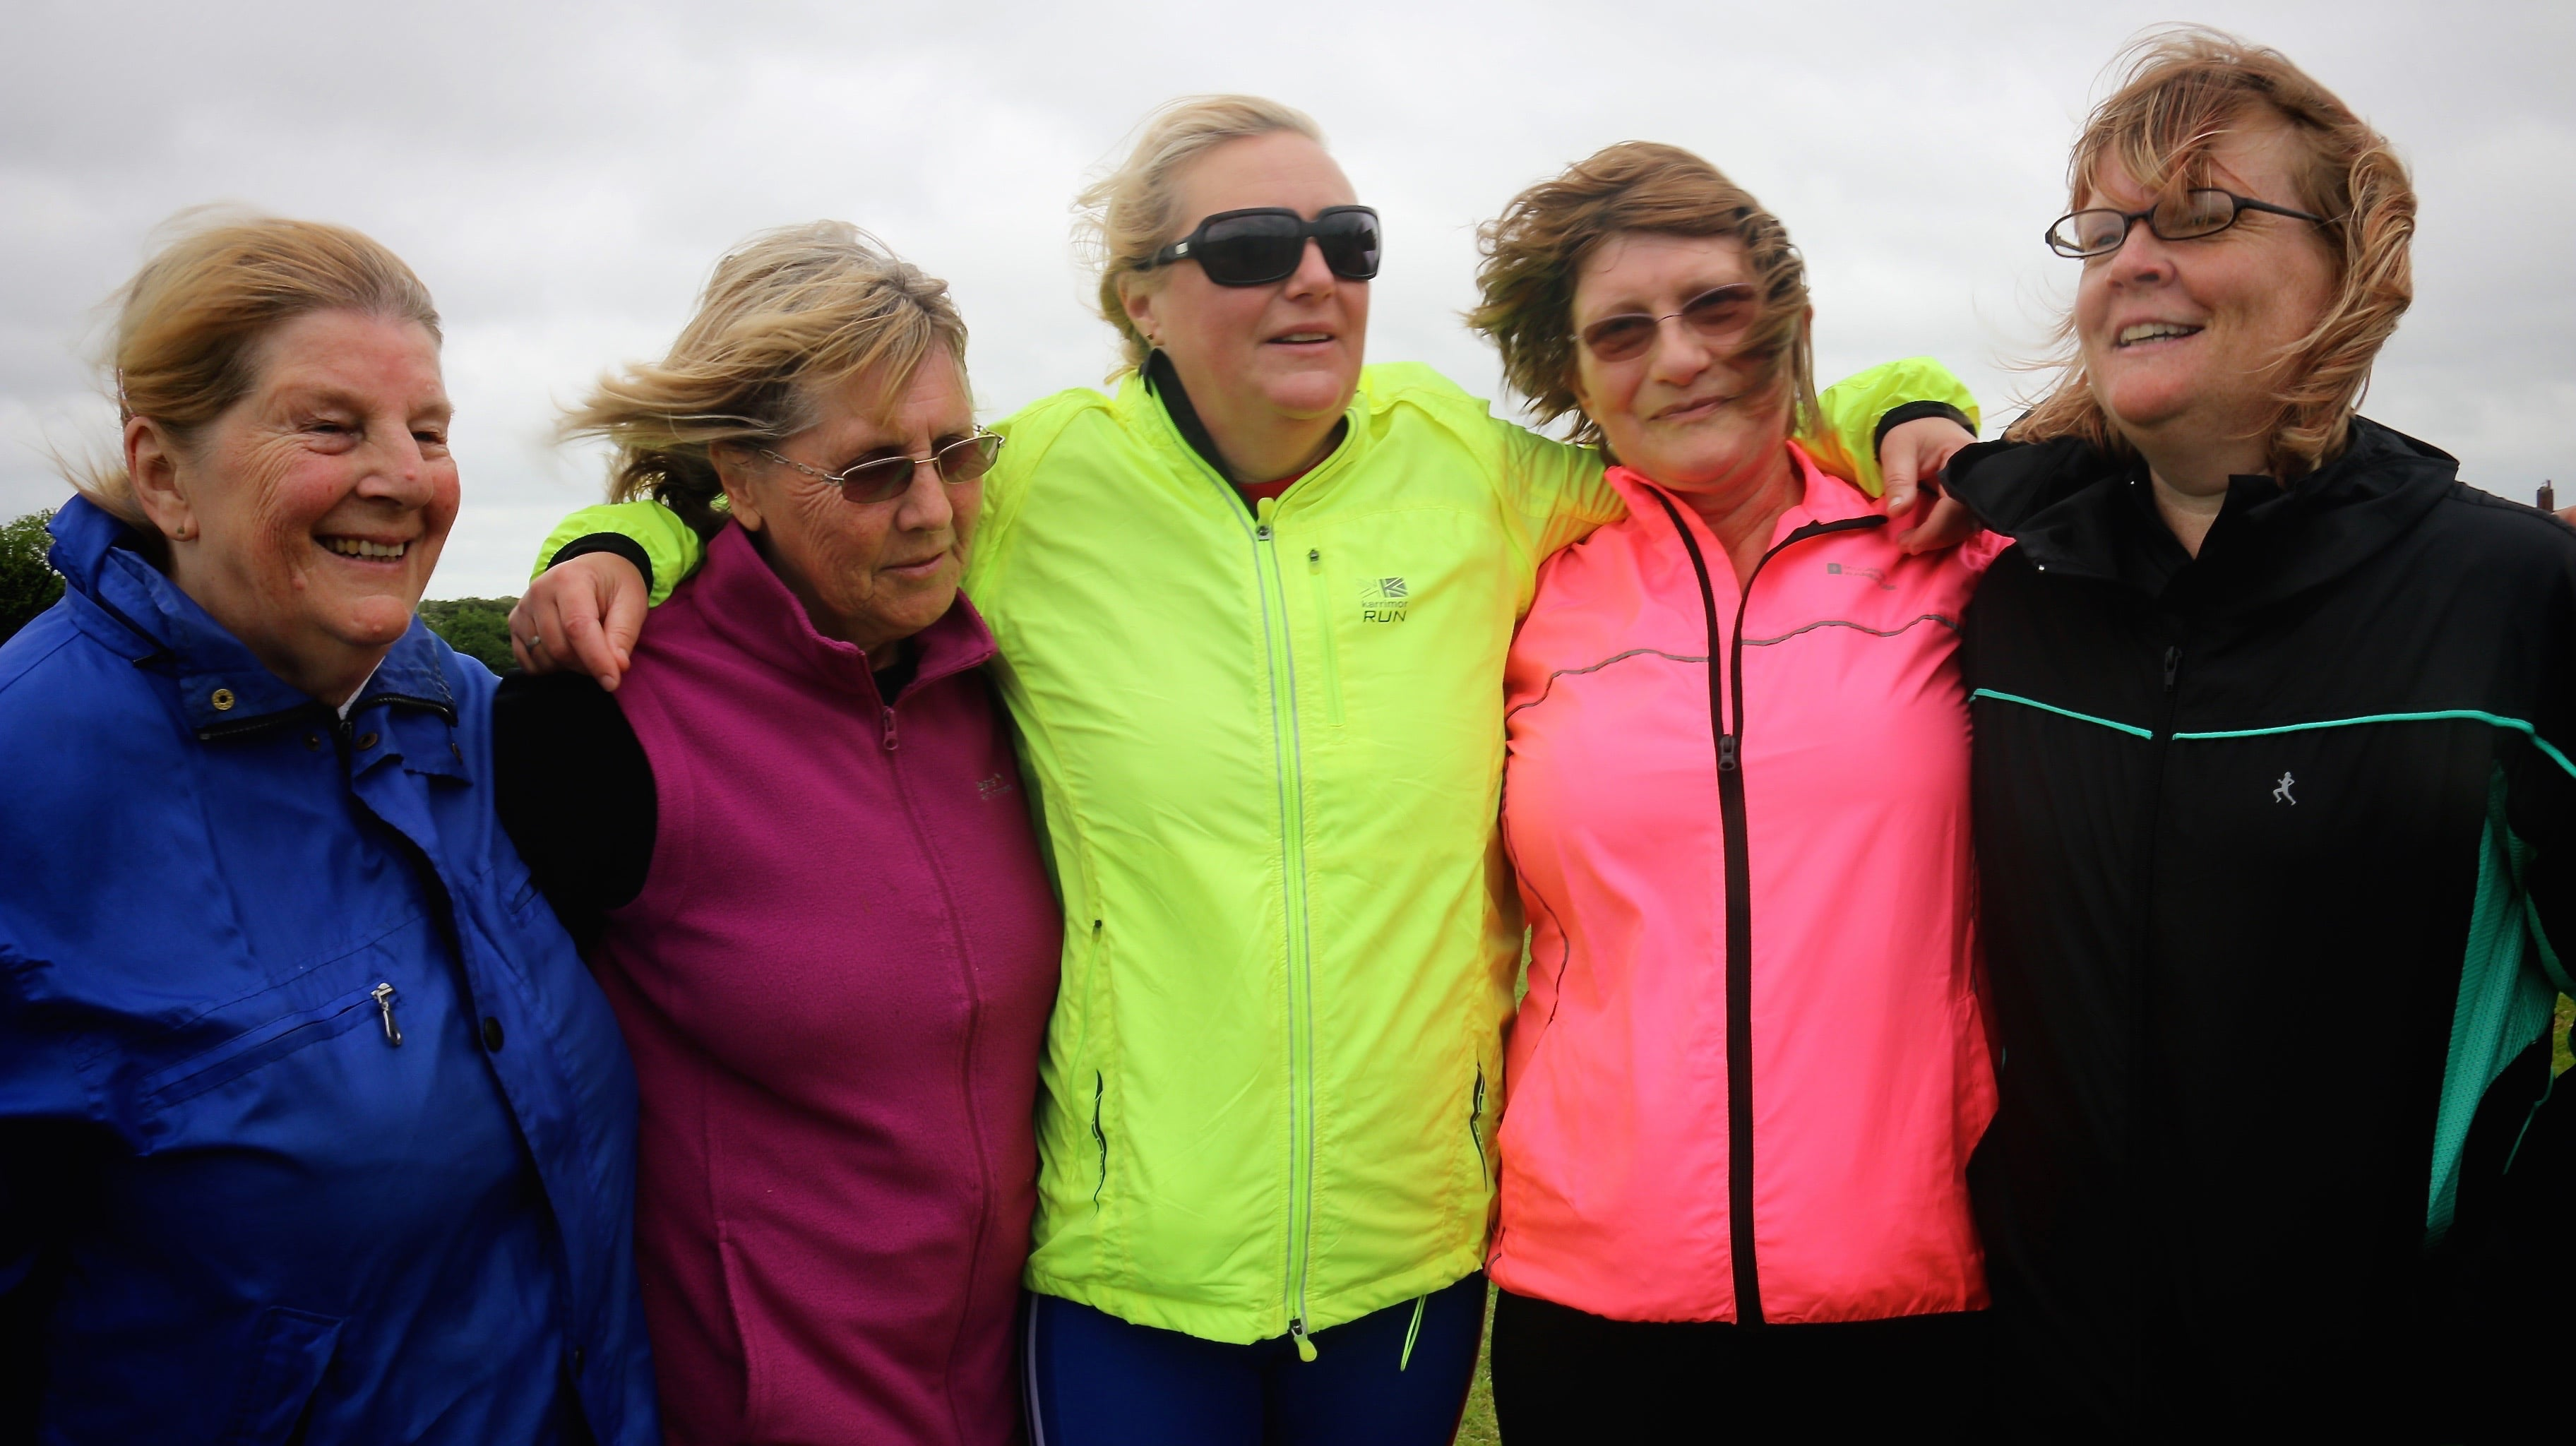 five females enjoying exercising outside